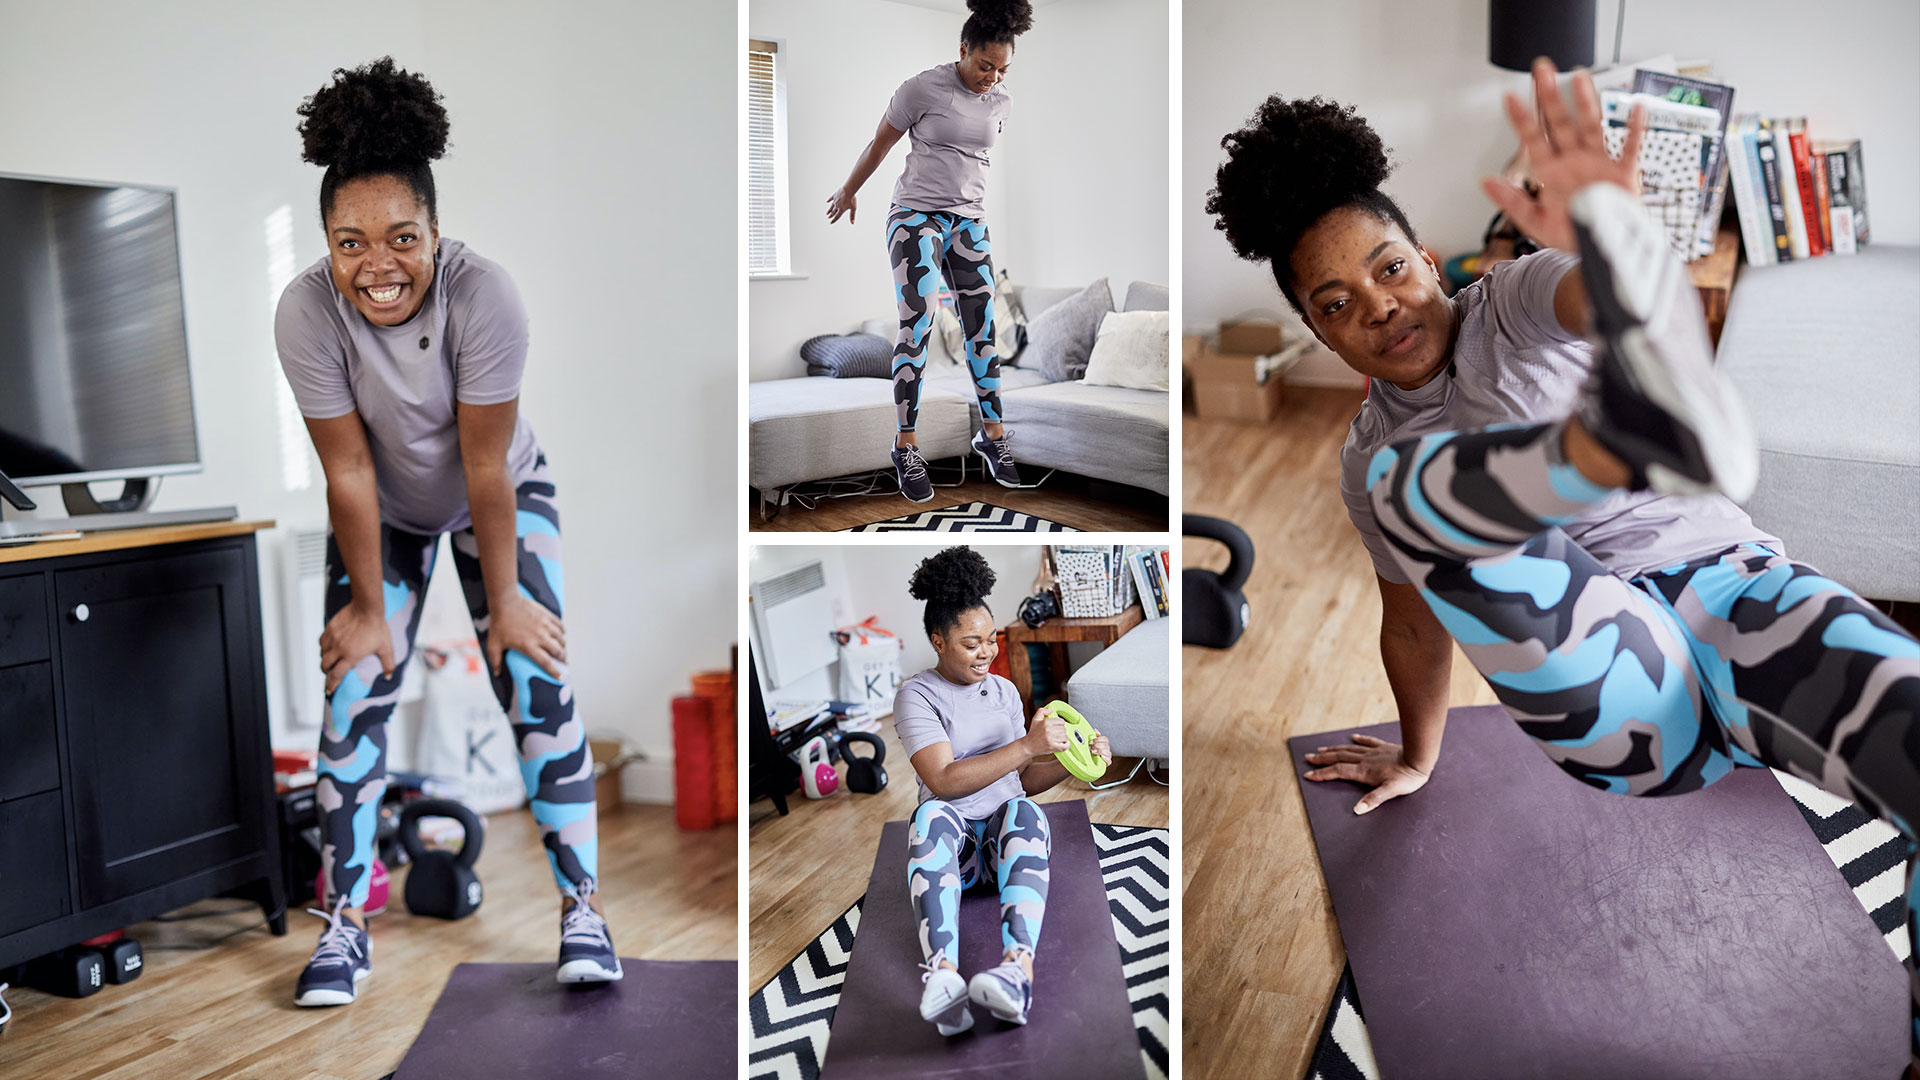 Digital adoption: How fitness instructor Elle Linton adapted during Covid-19